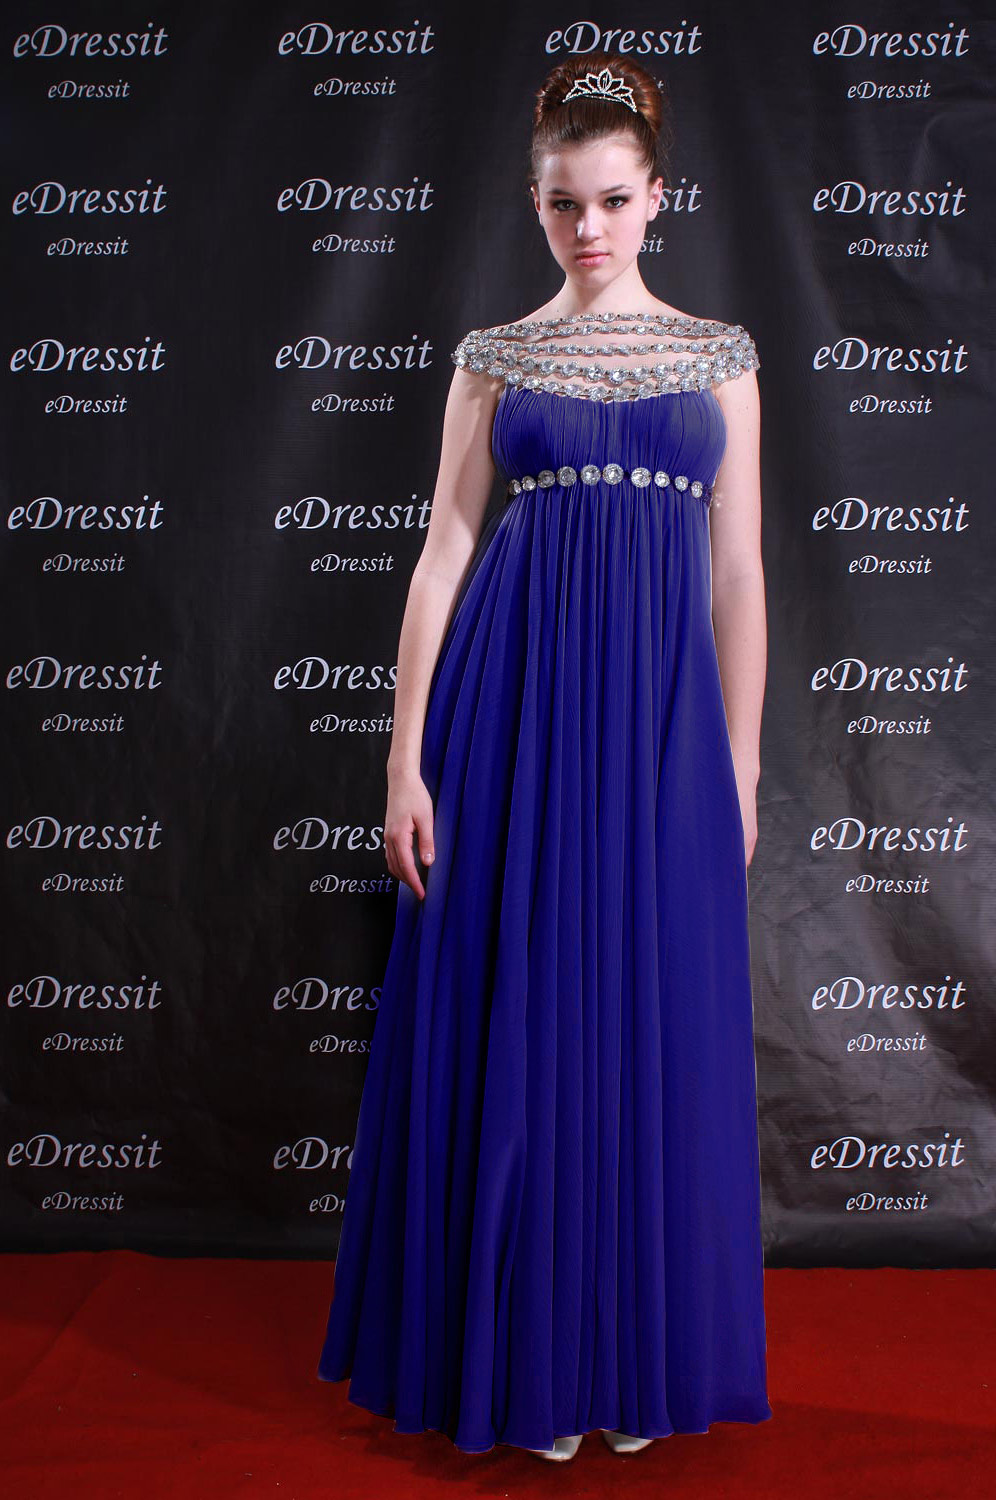 On sale !! eDressit dark blue Prom Gown Evening Dress (00777335f)